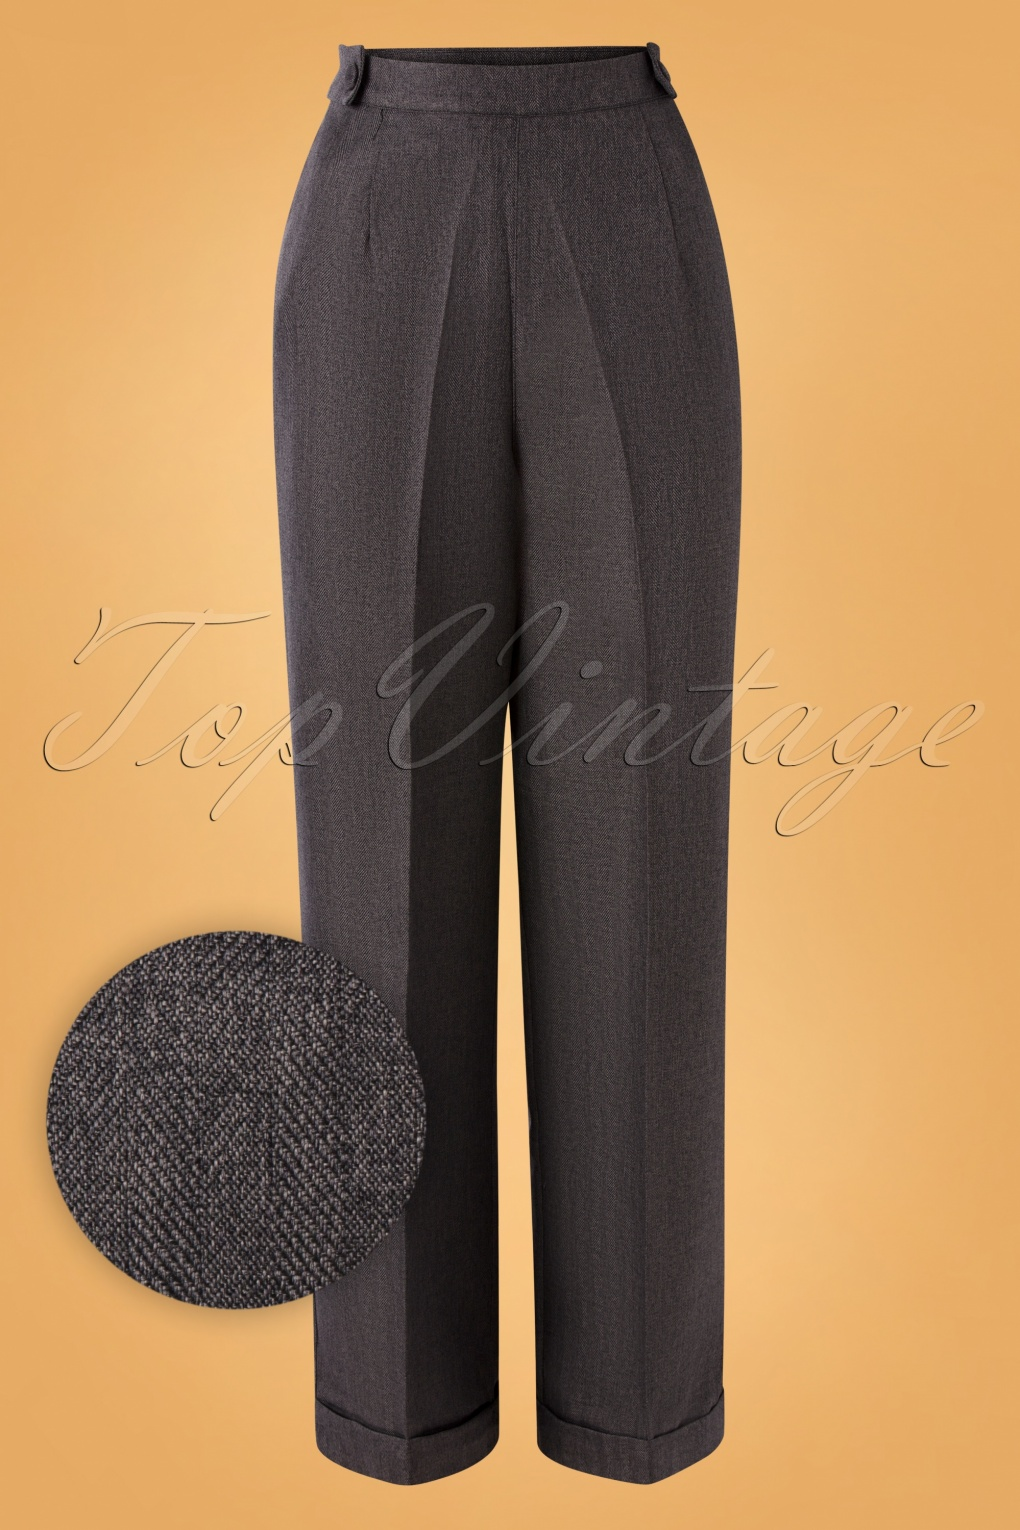 1940s Swing Pants & Sailor Trousers- Wide Leg, High Waist 40s Work It Out Trousers in Grey £40.86 AT vintagedancer.com